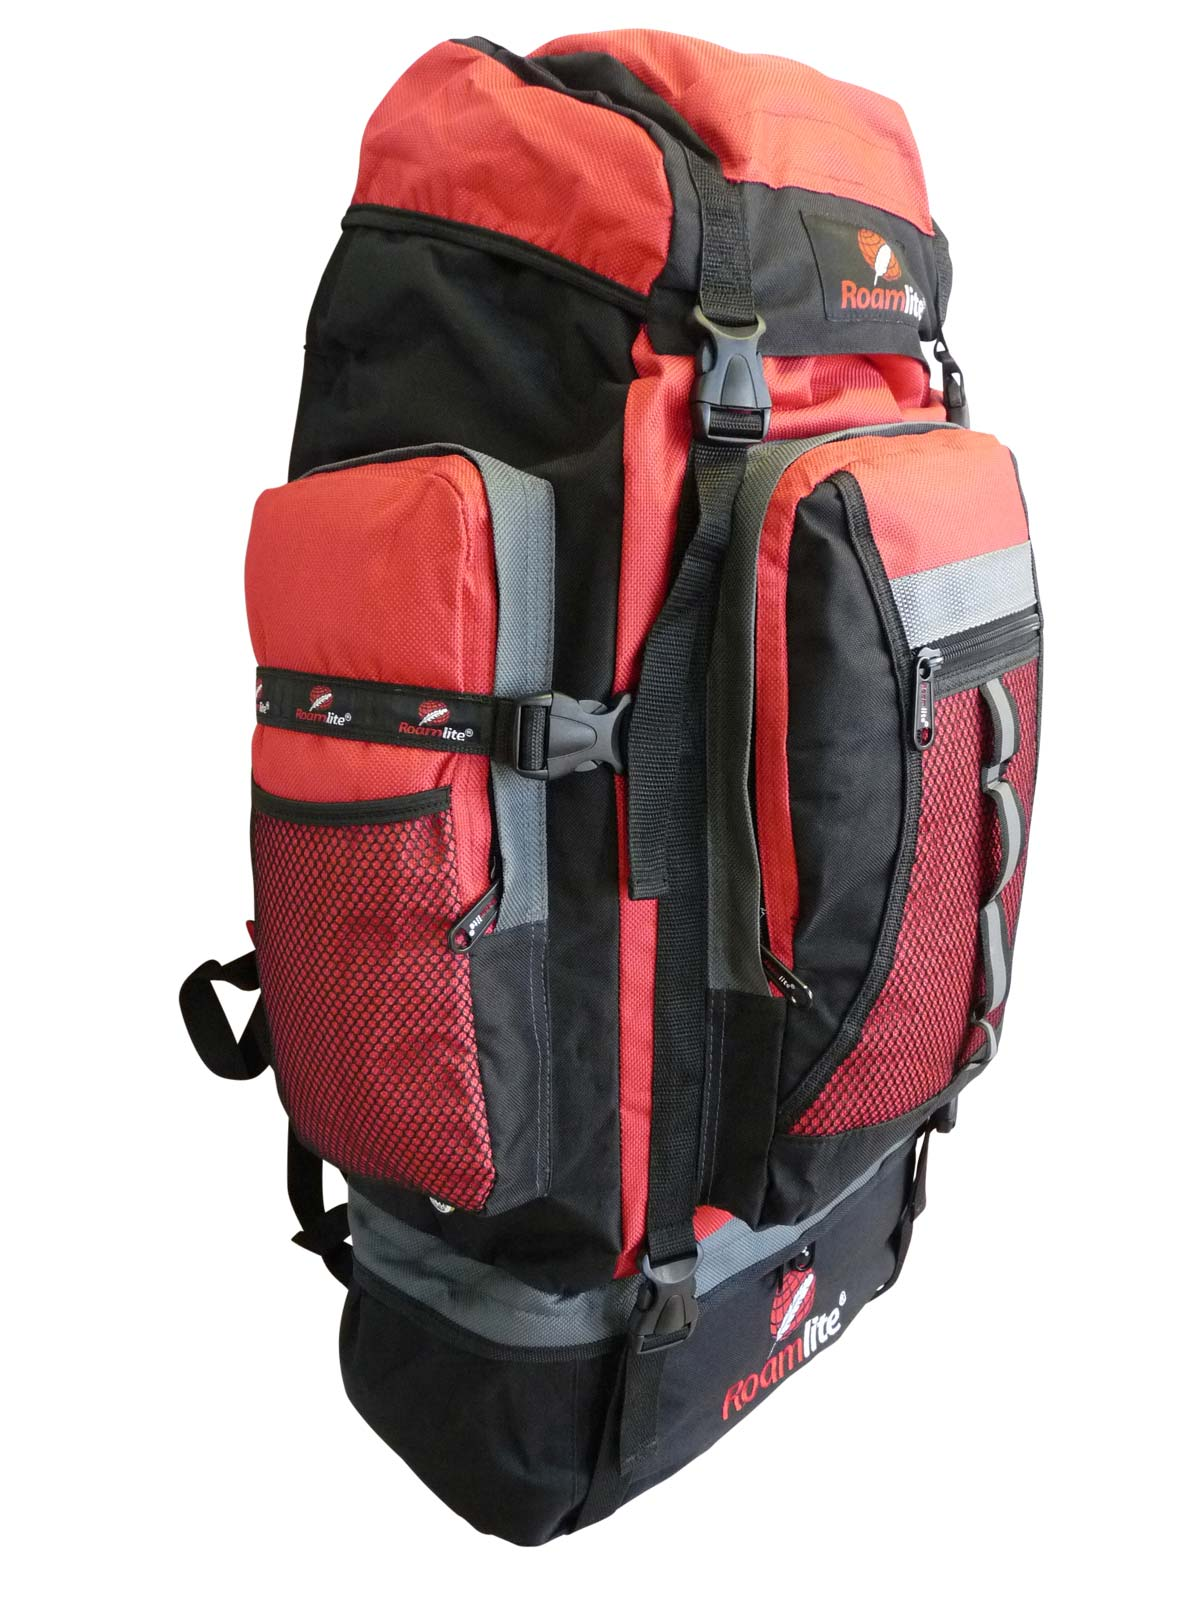 Festival Camping Backpack Bag RL02KRrs